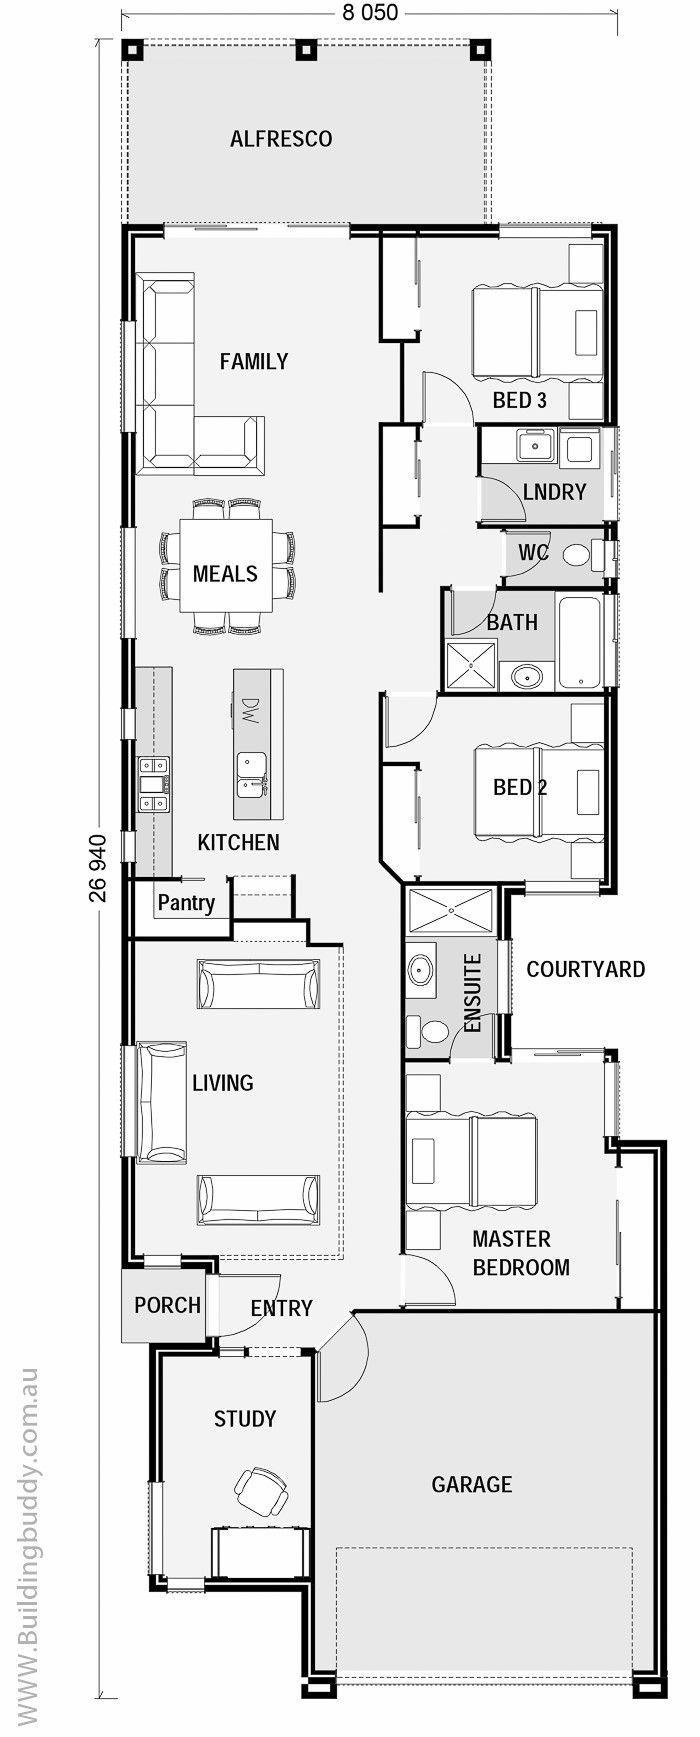 Small Lot House Plans Luxury House Plans Home Designs Building Prices & Builders Small